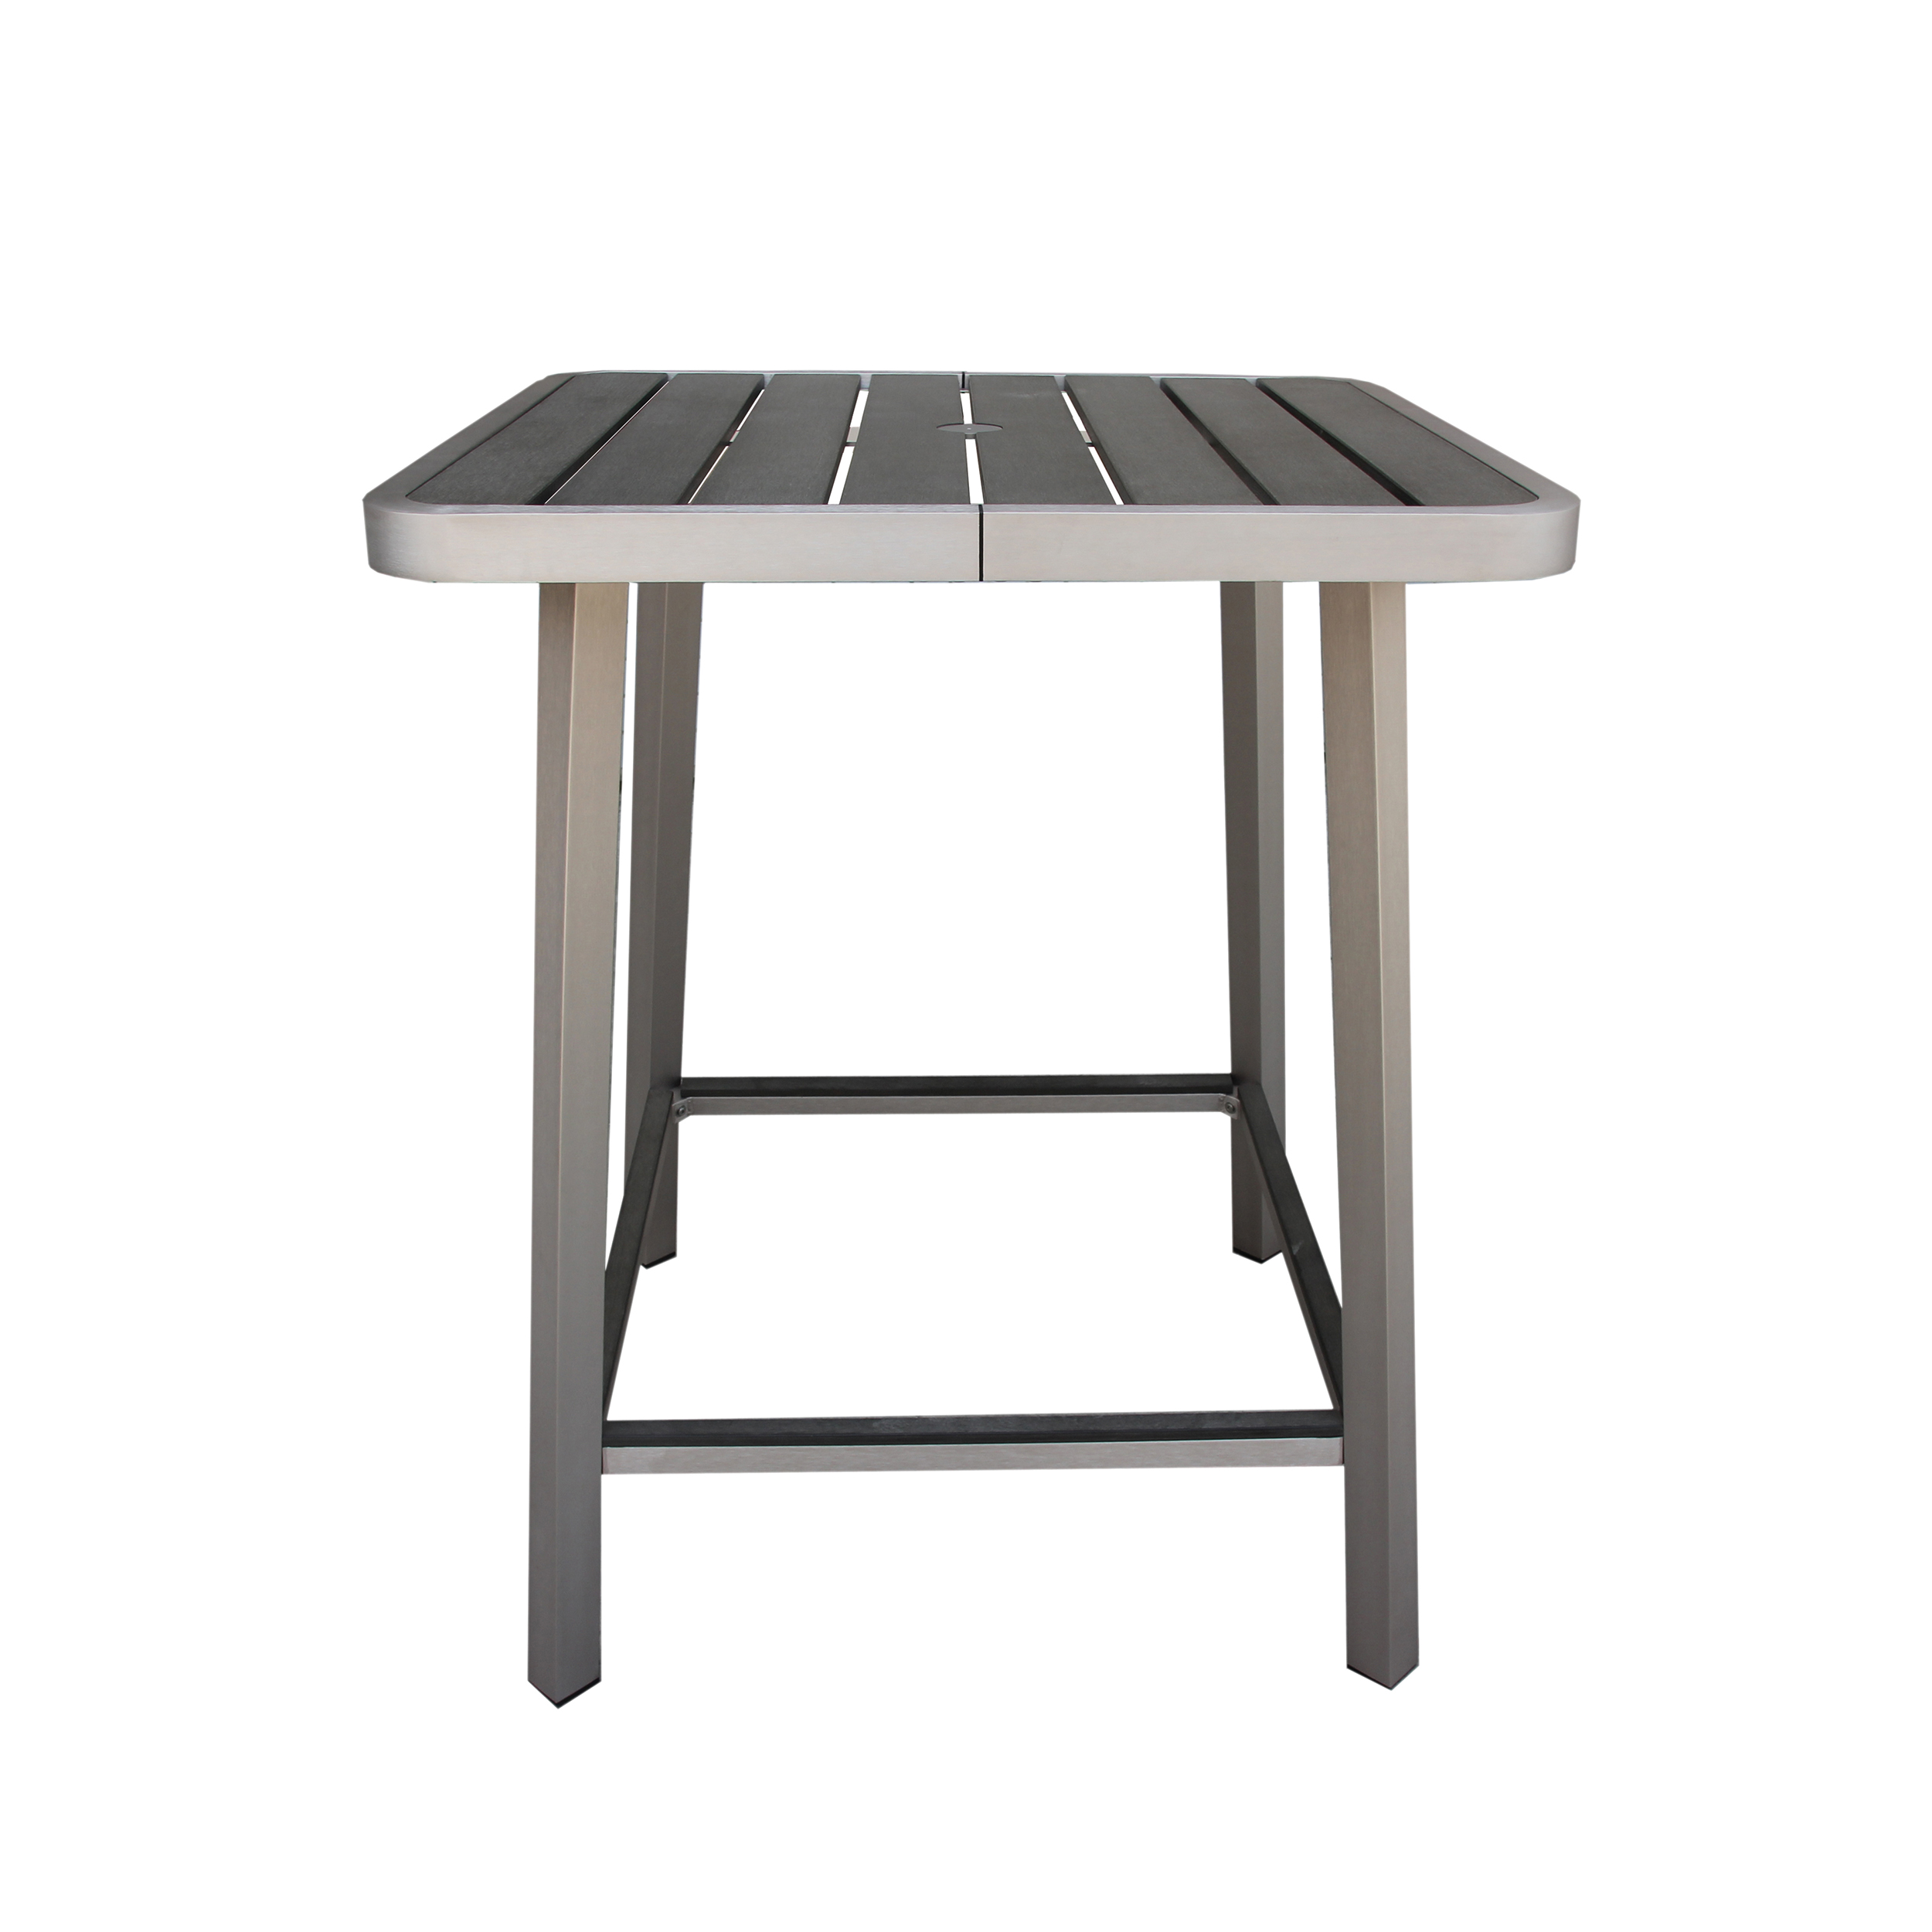 Boraam 76680 Fresca Polylumber Pub Table by Boraam